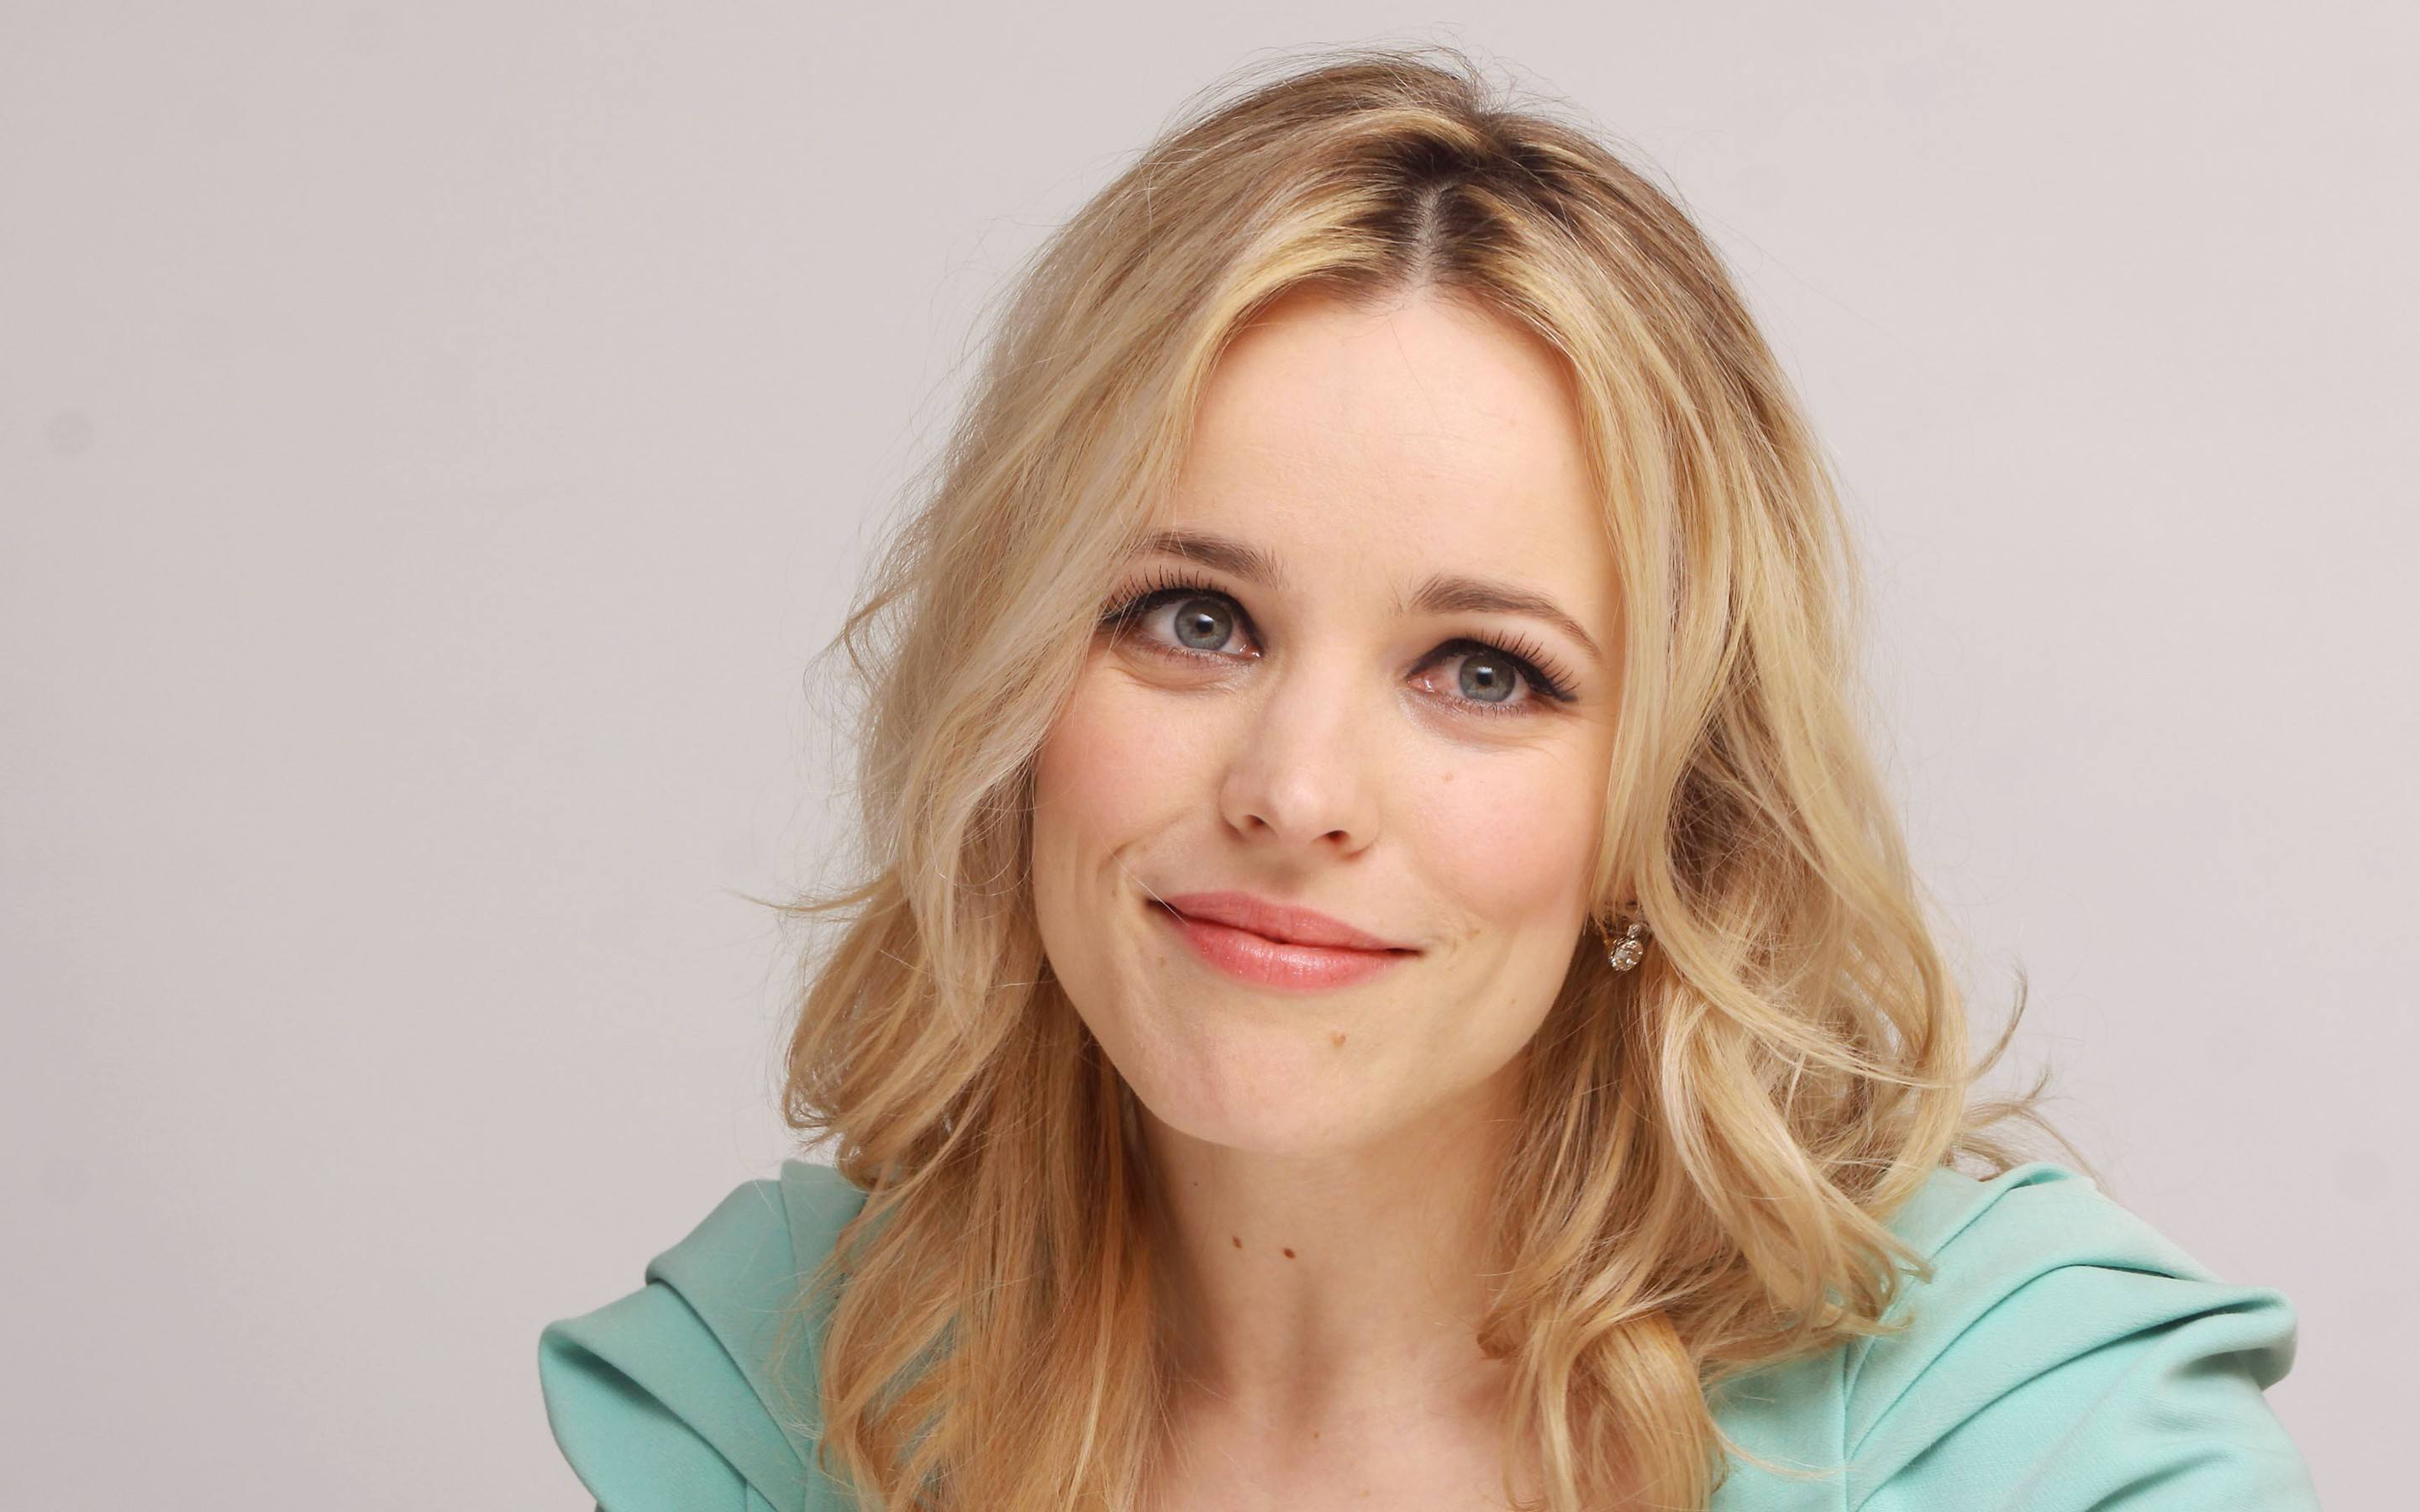 Forum on this topic: Alison Bell (actress), rachel-mcadams/